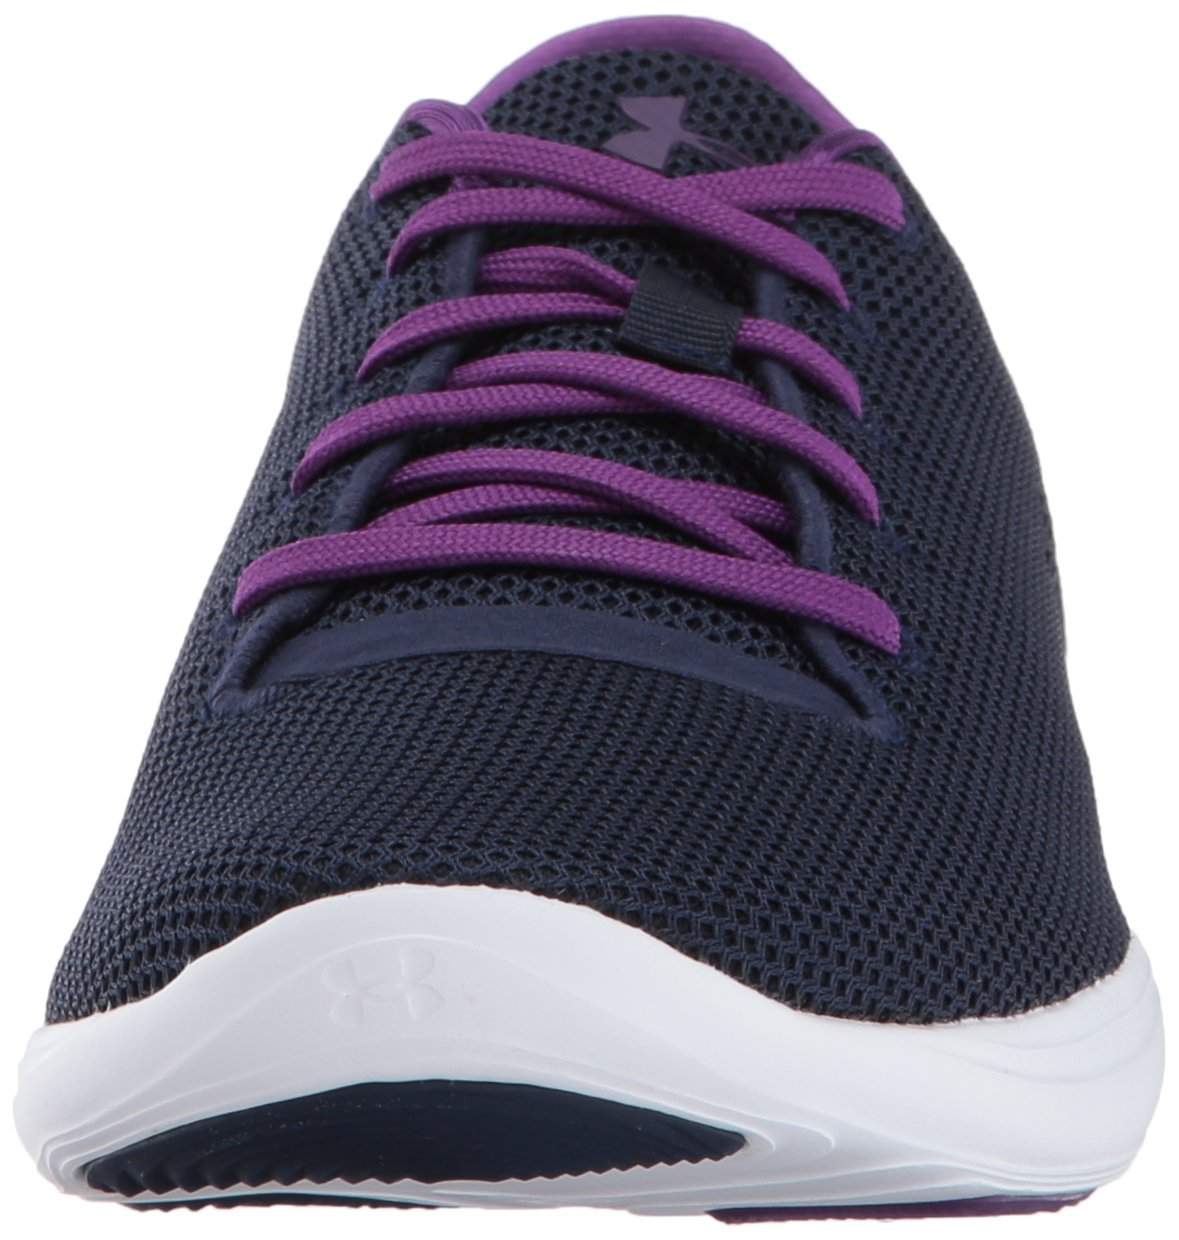 Under Armour Women's Street Precision Sport Low Neutral Cross-Trainer Shoe B01NCLZLYV 8 M US|Blue